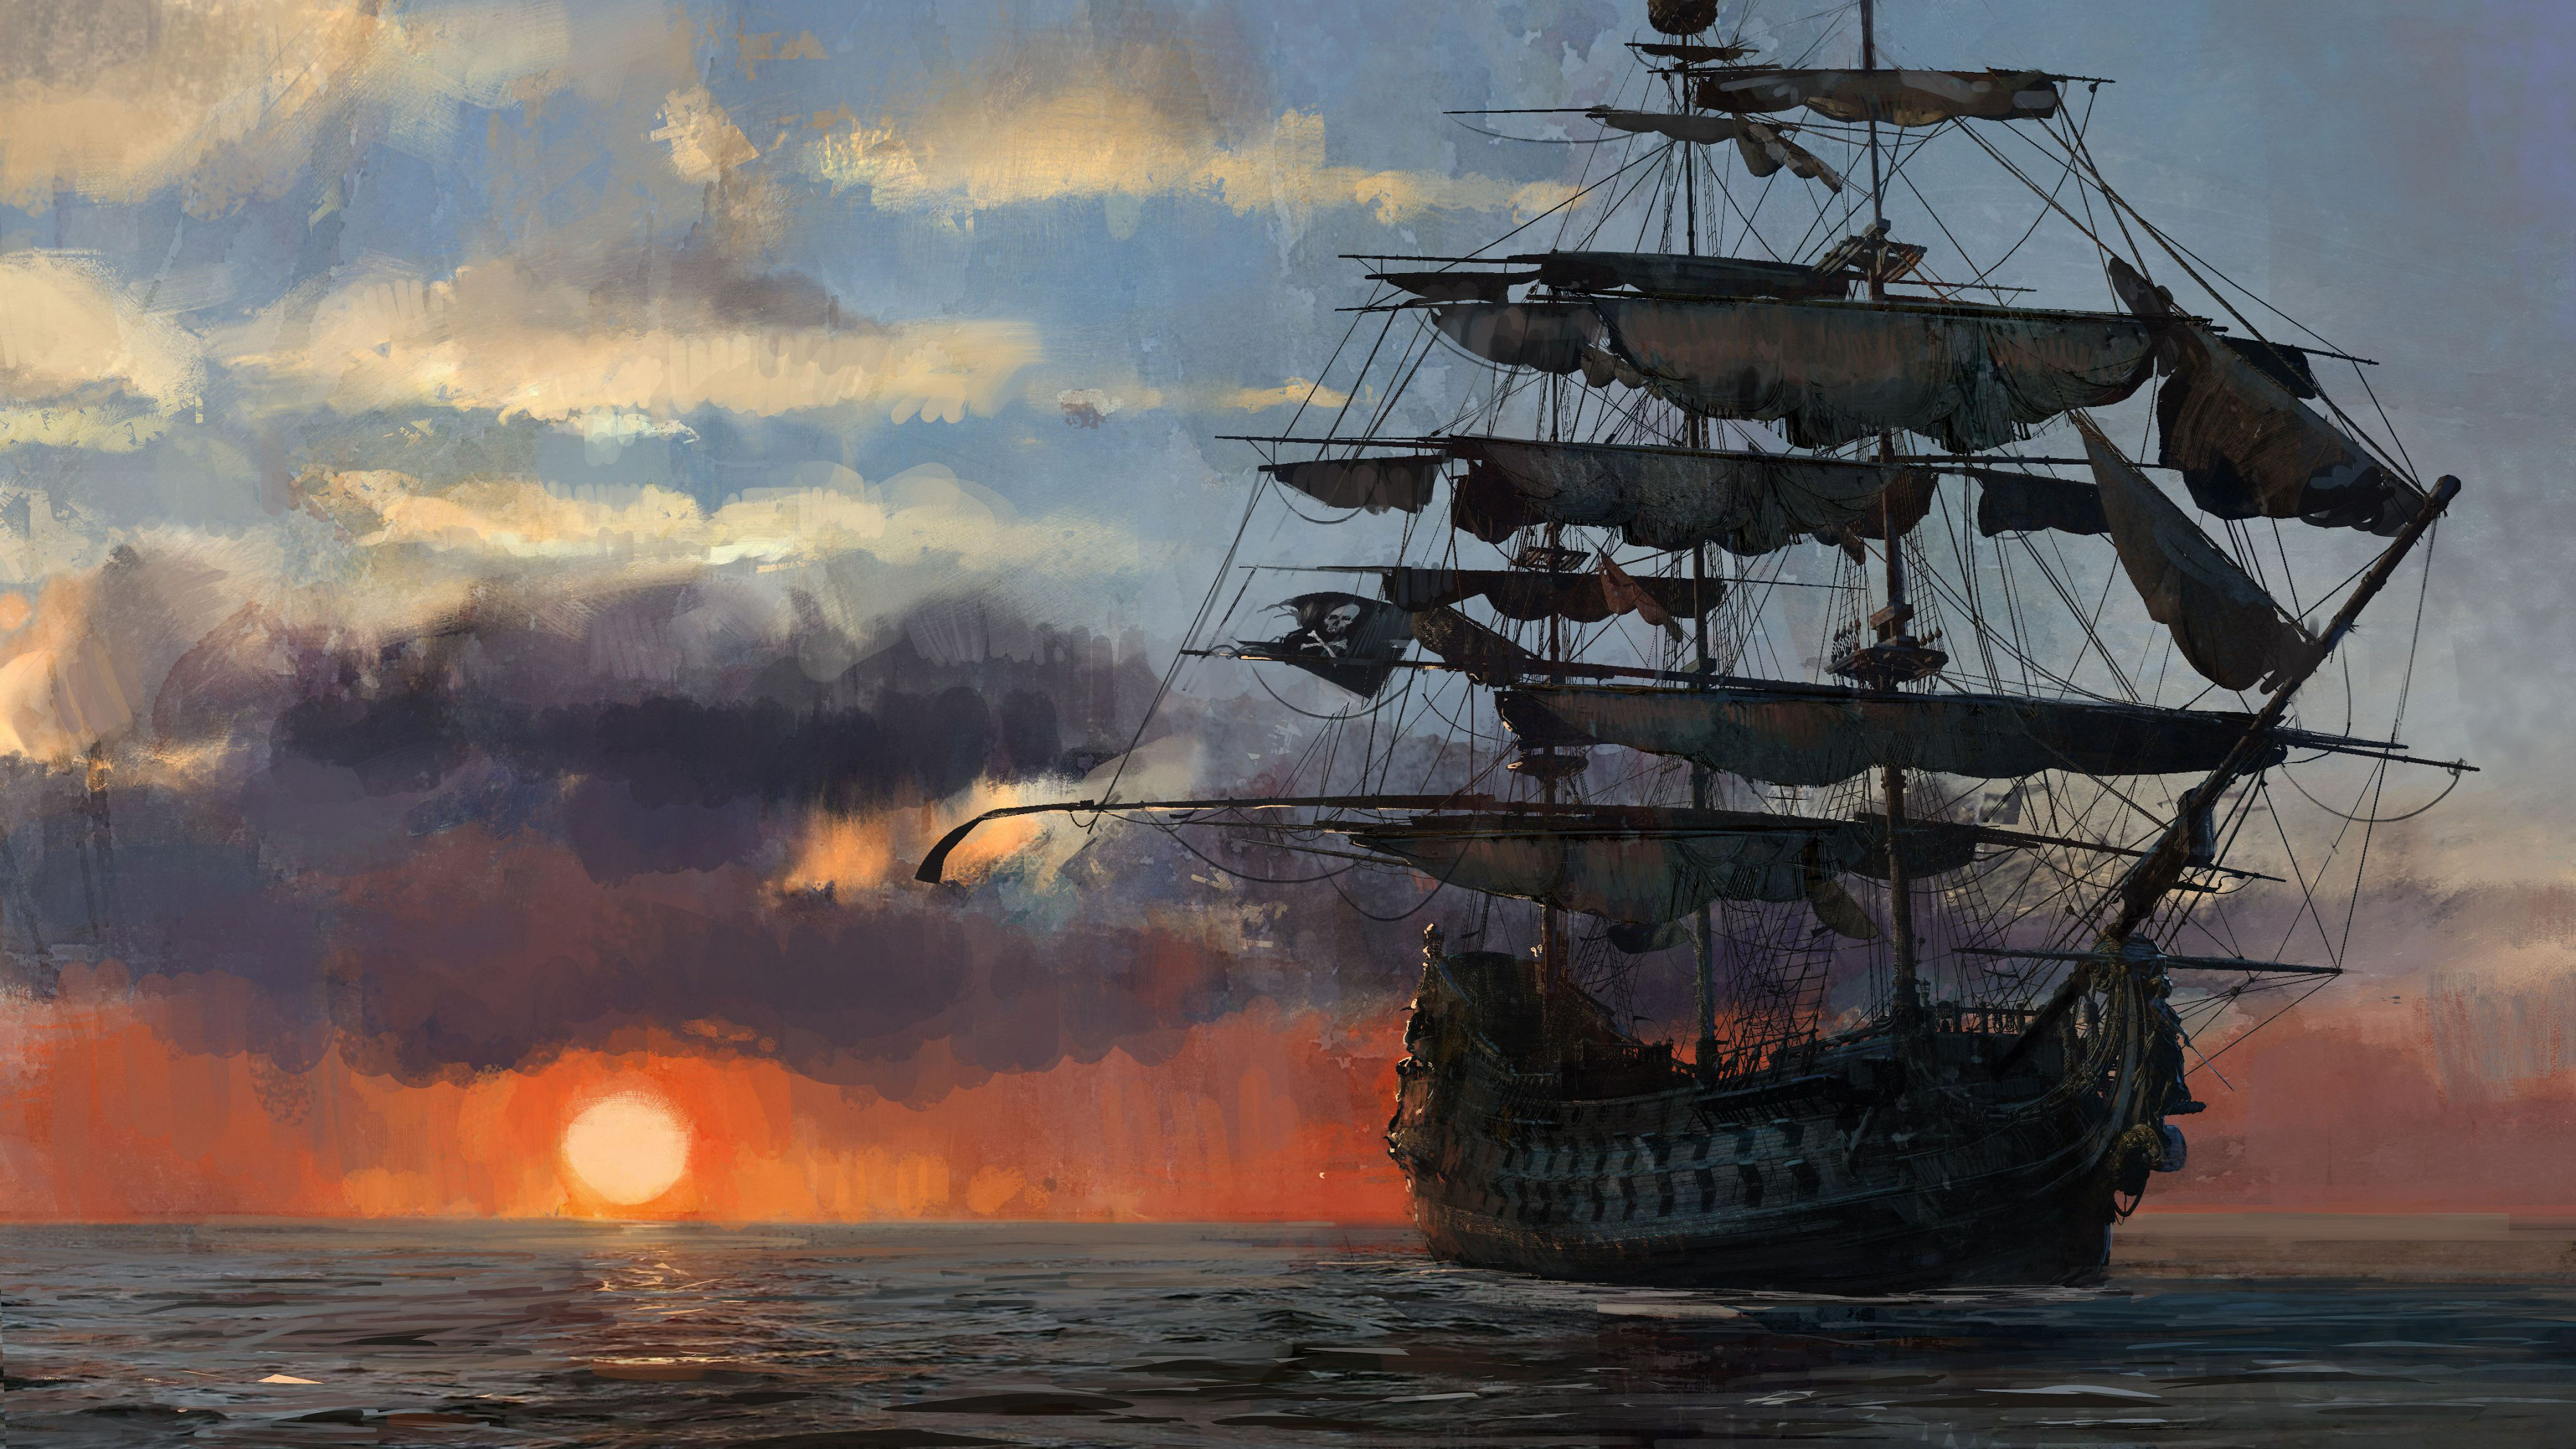 Skull And Bones Pictures